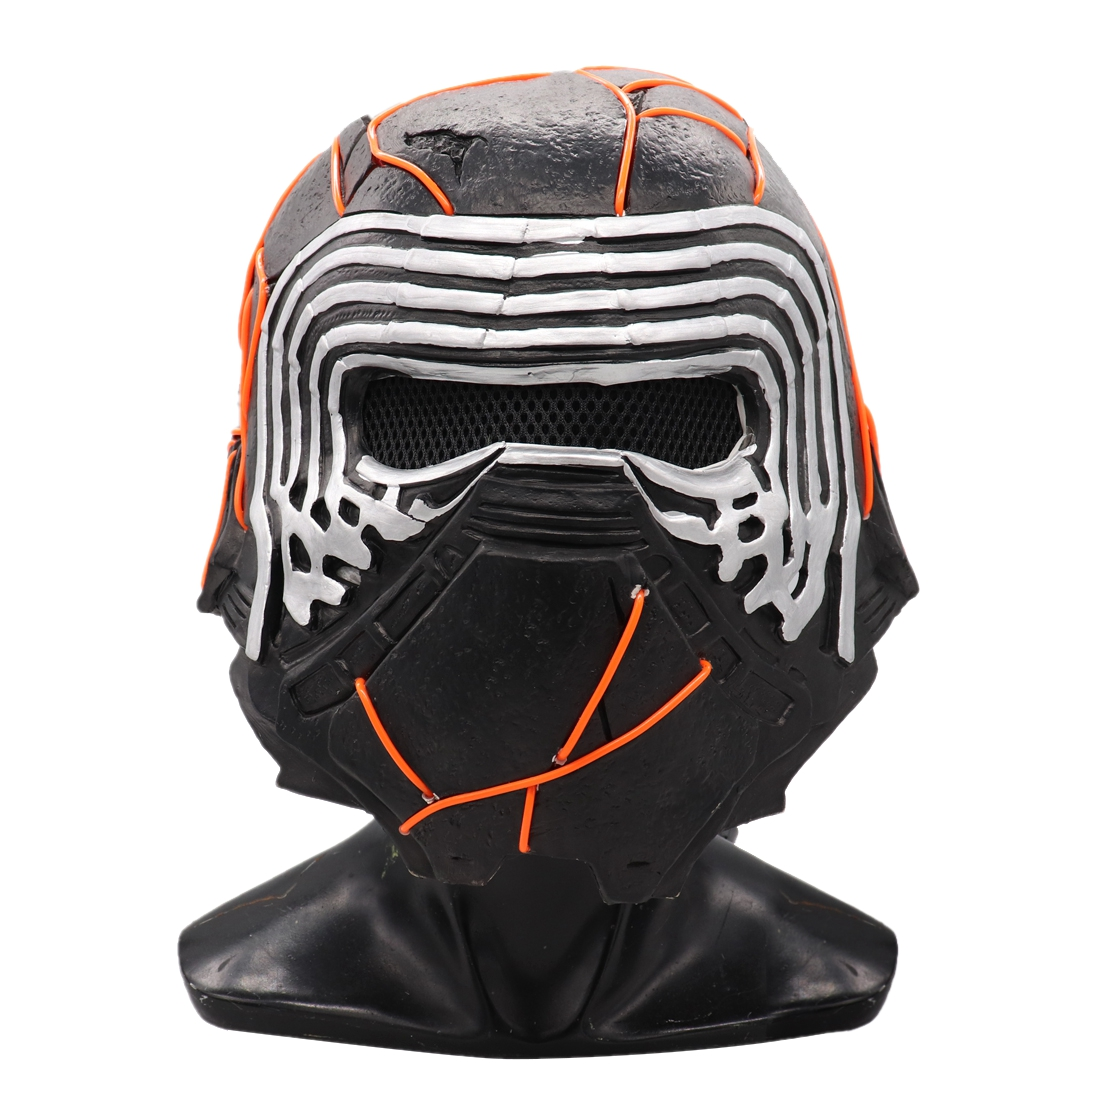 Kylo Ren Helmet Mask Star Wars 9 The Rise Of Skywalker Cosplay Mask Star Wars Led Helmets Masks Halloween Party Prop Boys Costume Accessories Aliexpress